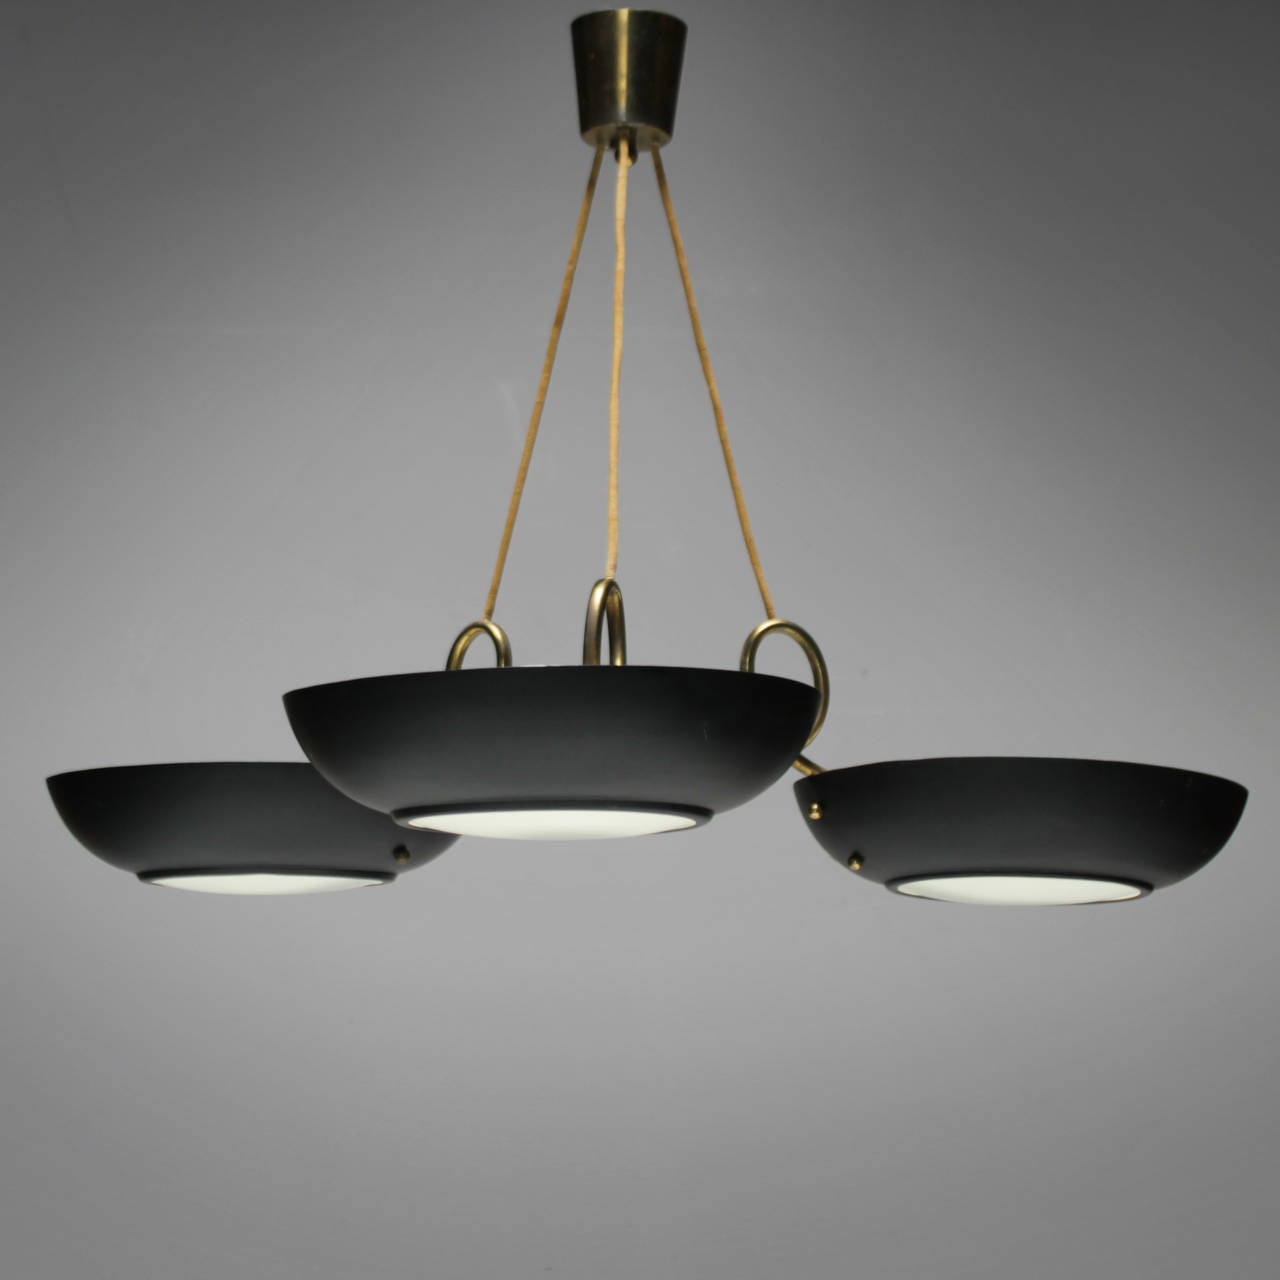 Three Light Chandelier By Philips At 1stdibs